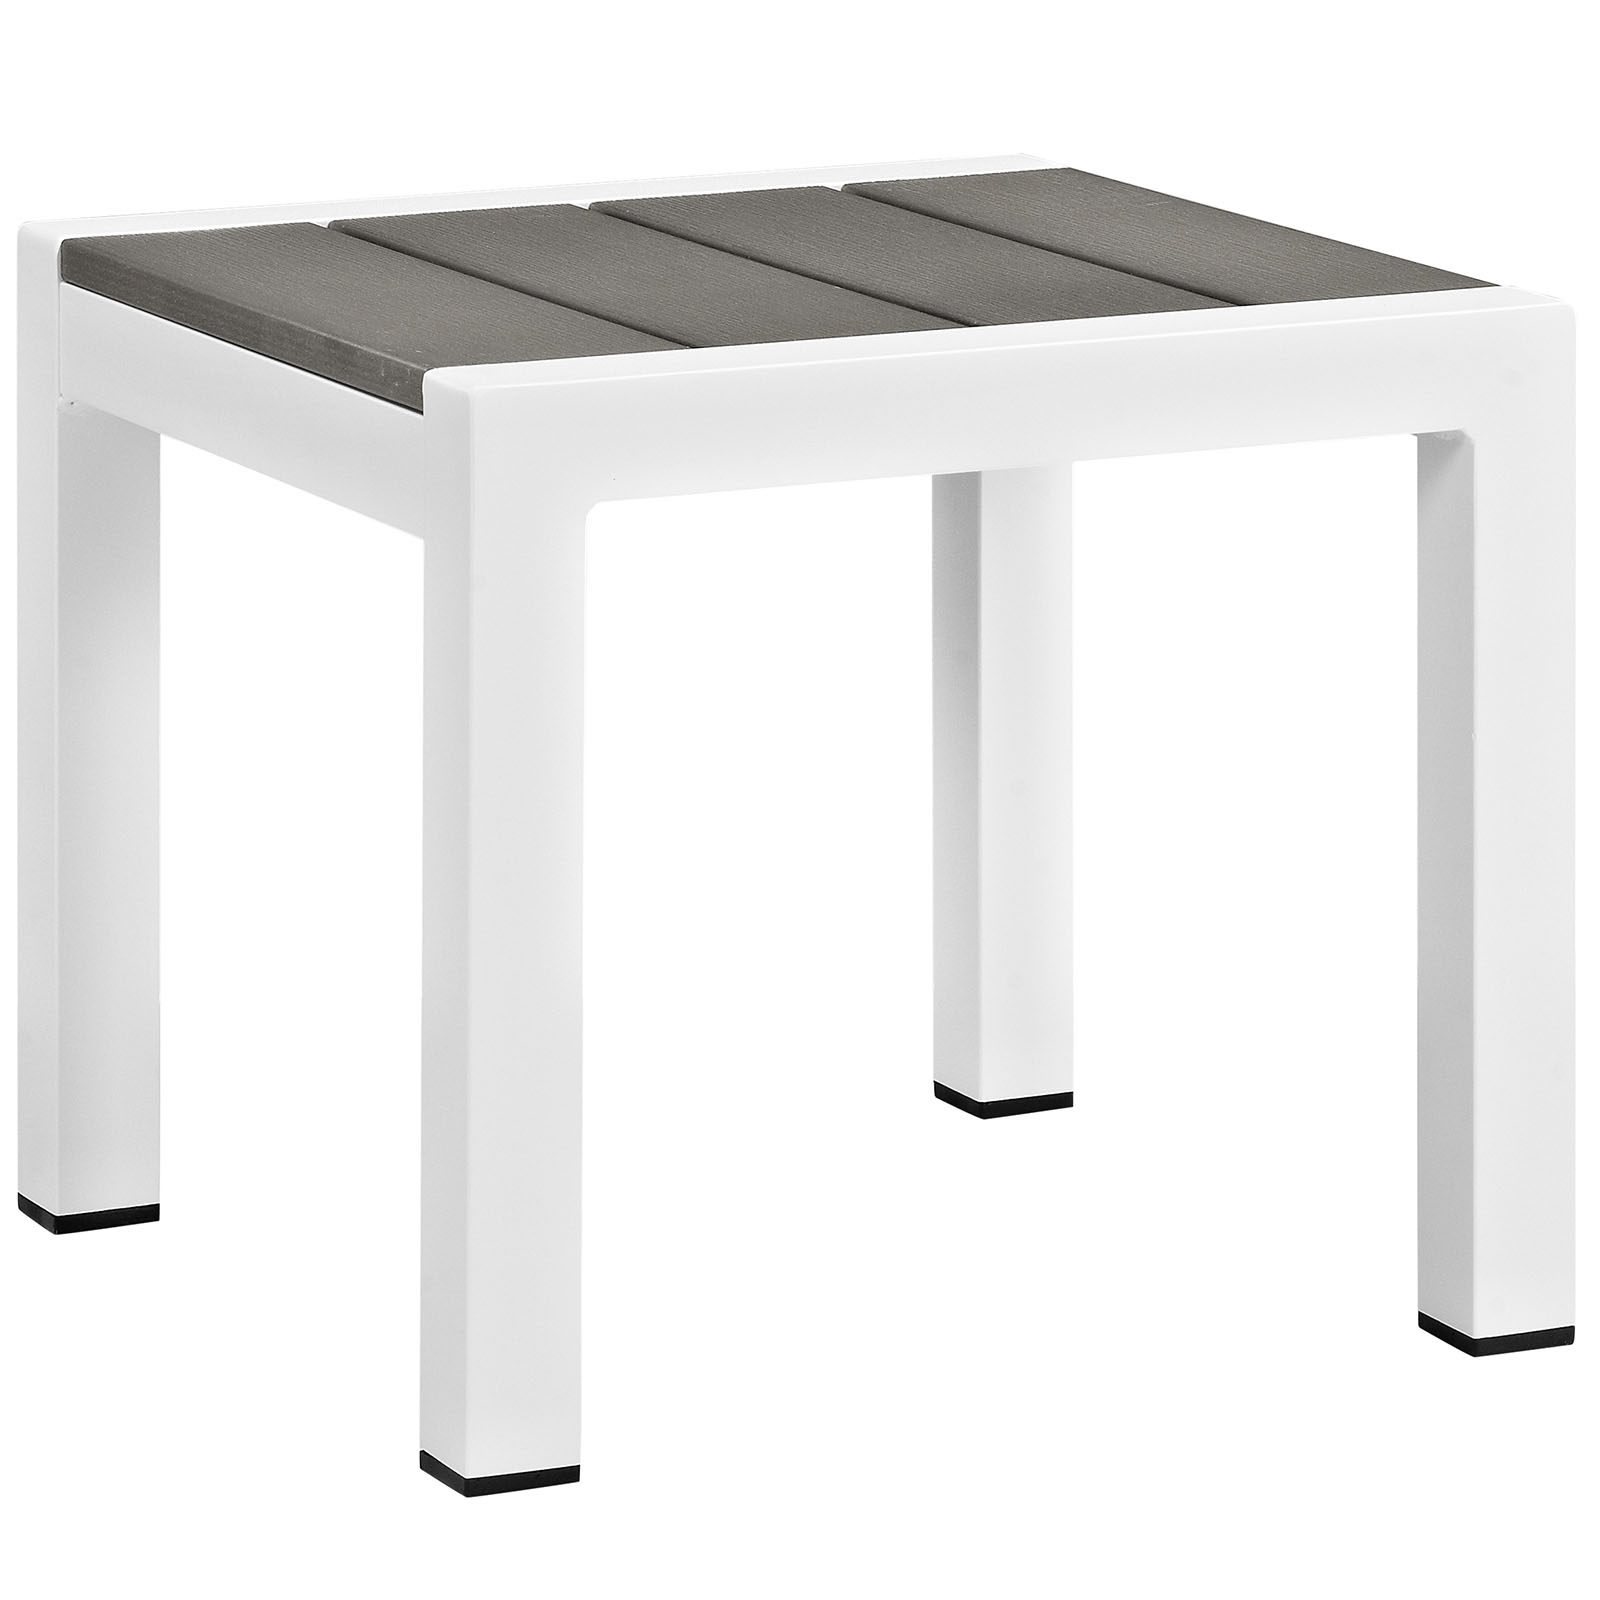 shore outdoor patio aluminum side table eei whi gry folding target maple furniture iron frame queen white high gloss bunnings garden seat ikea storage drawers narrow small half